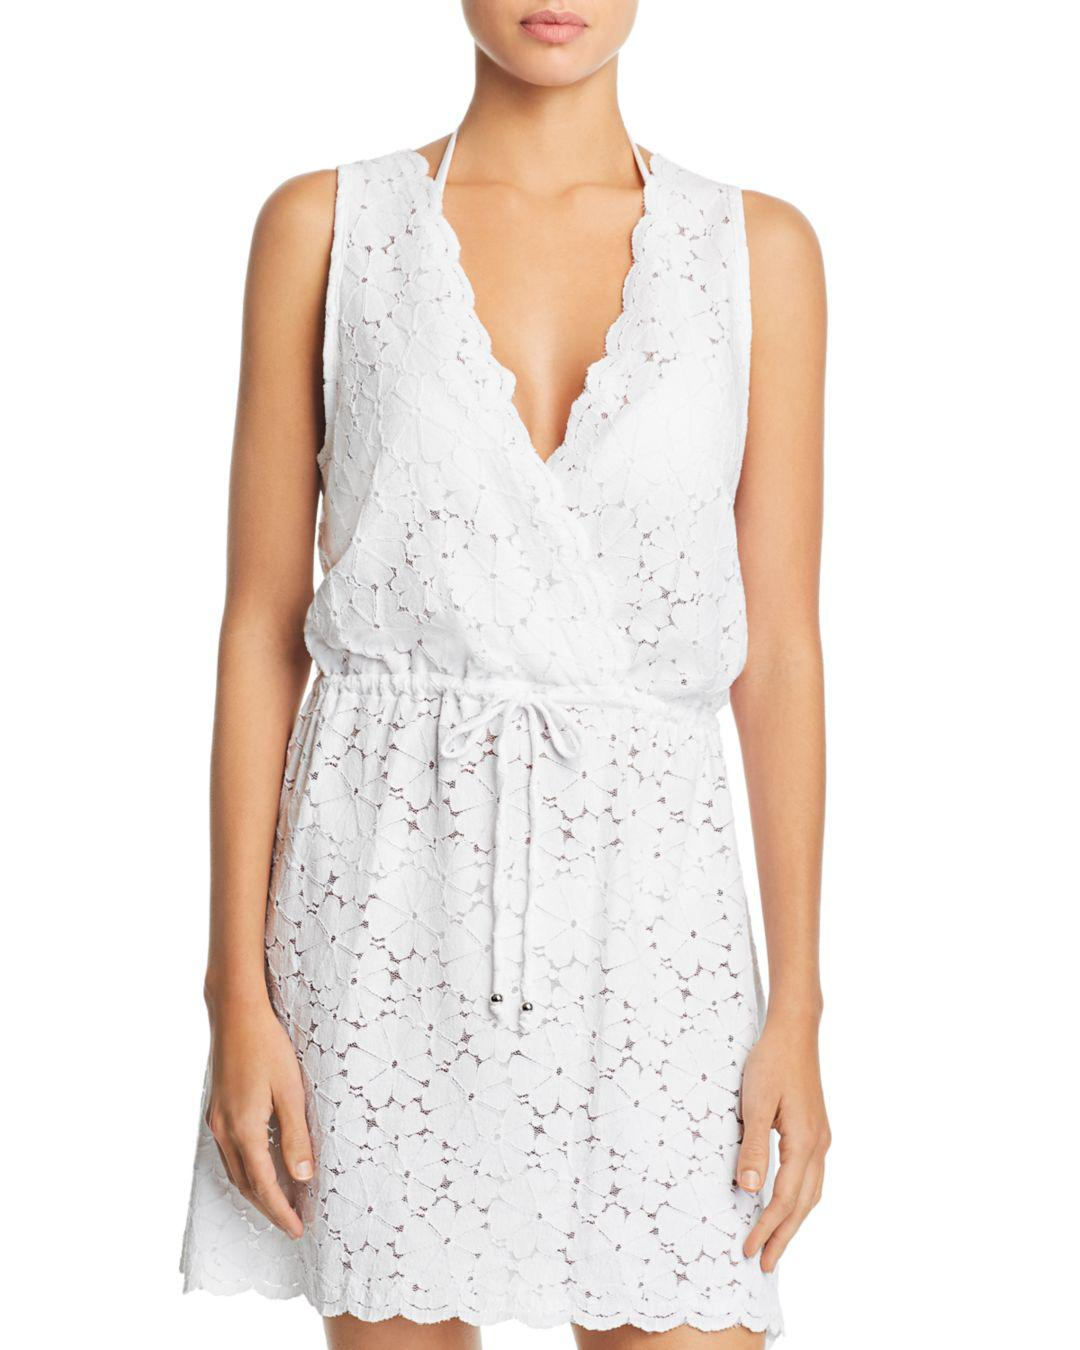 09d9ceb224b7b Lyst - J Valdi Flower Child Sleeveless Lace Swim Cover-up in White